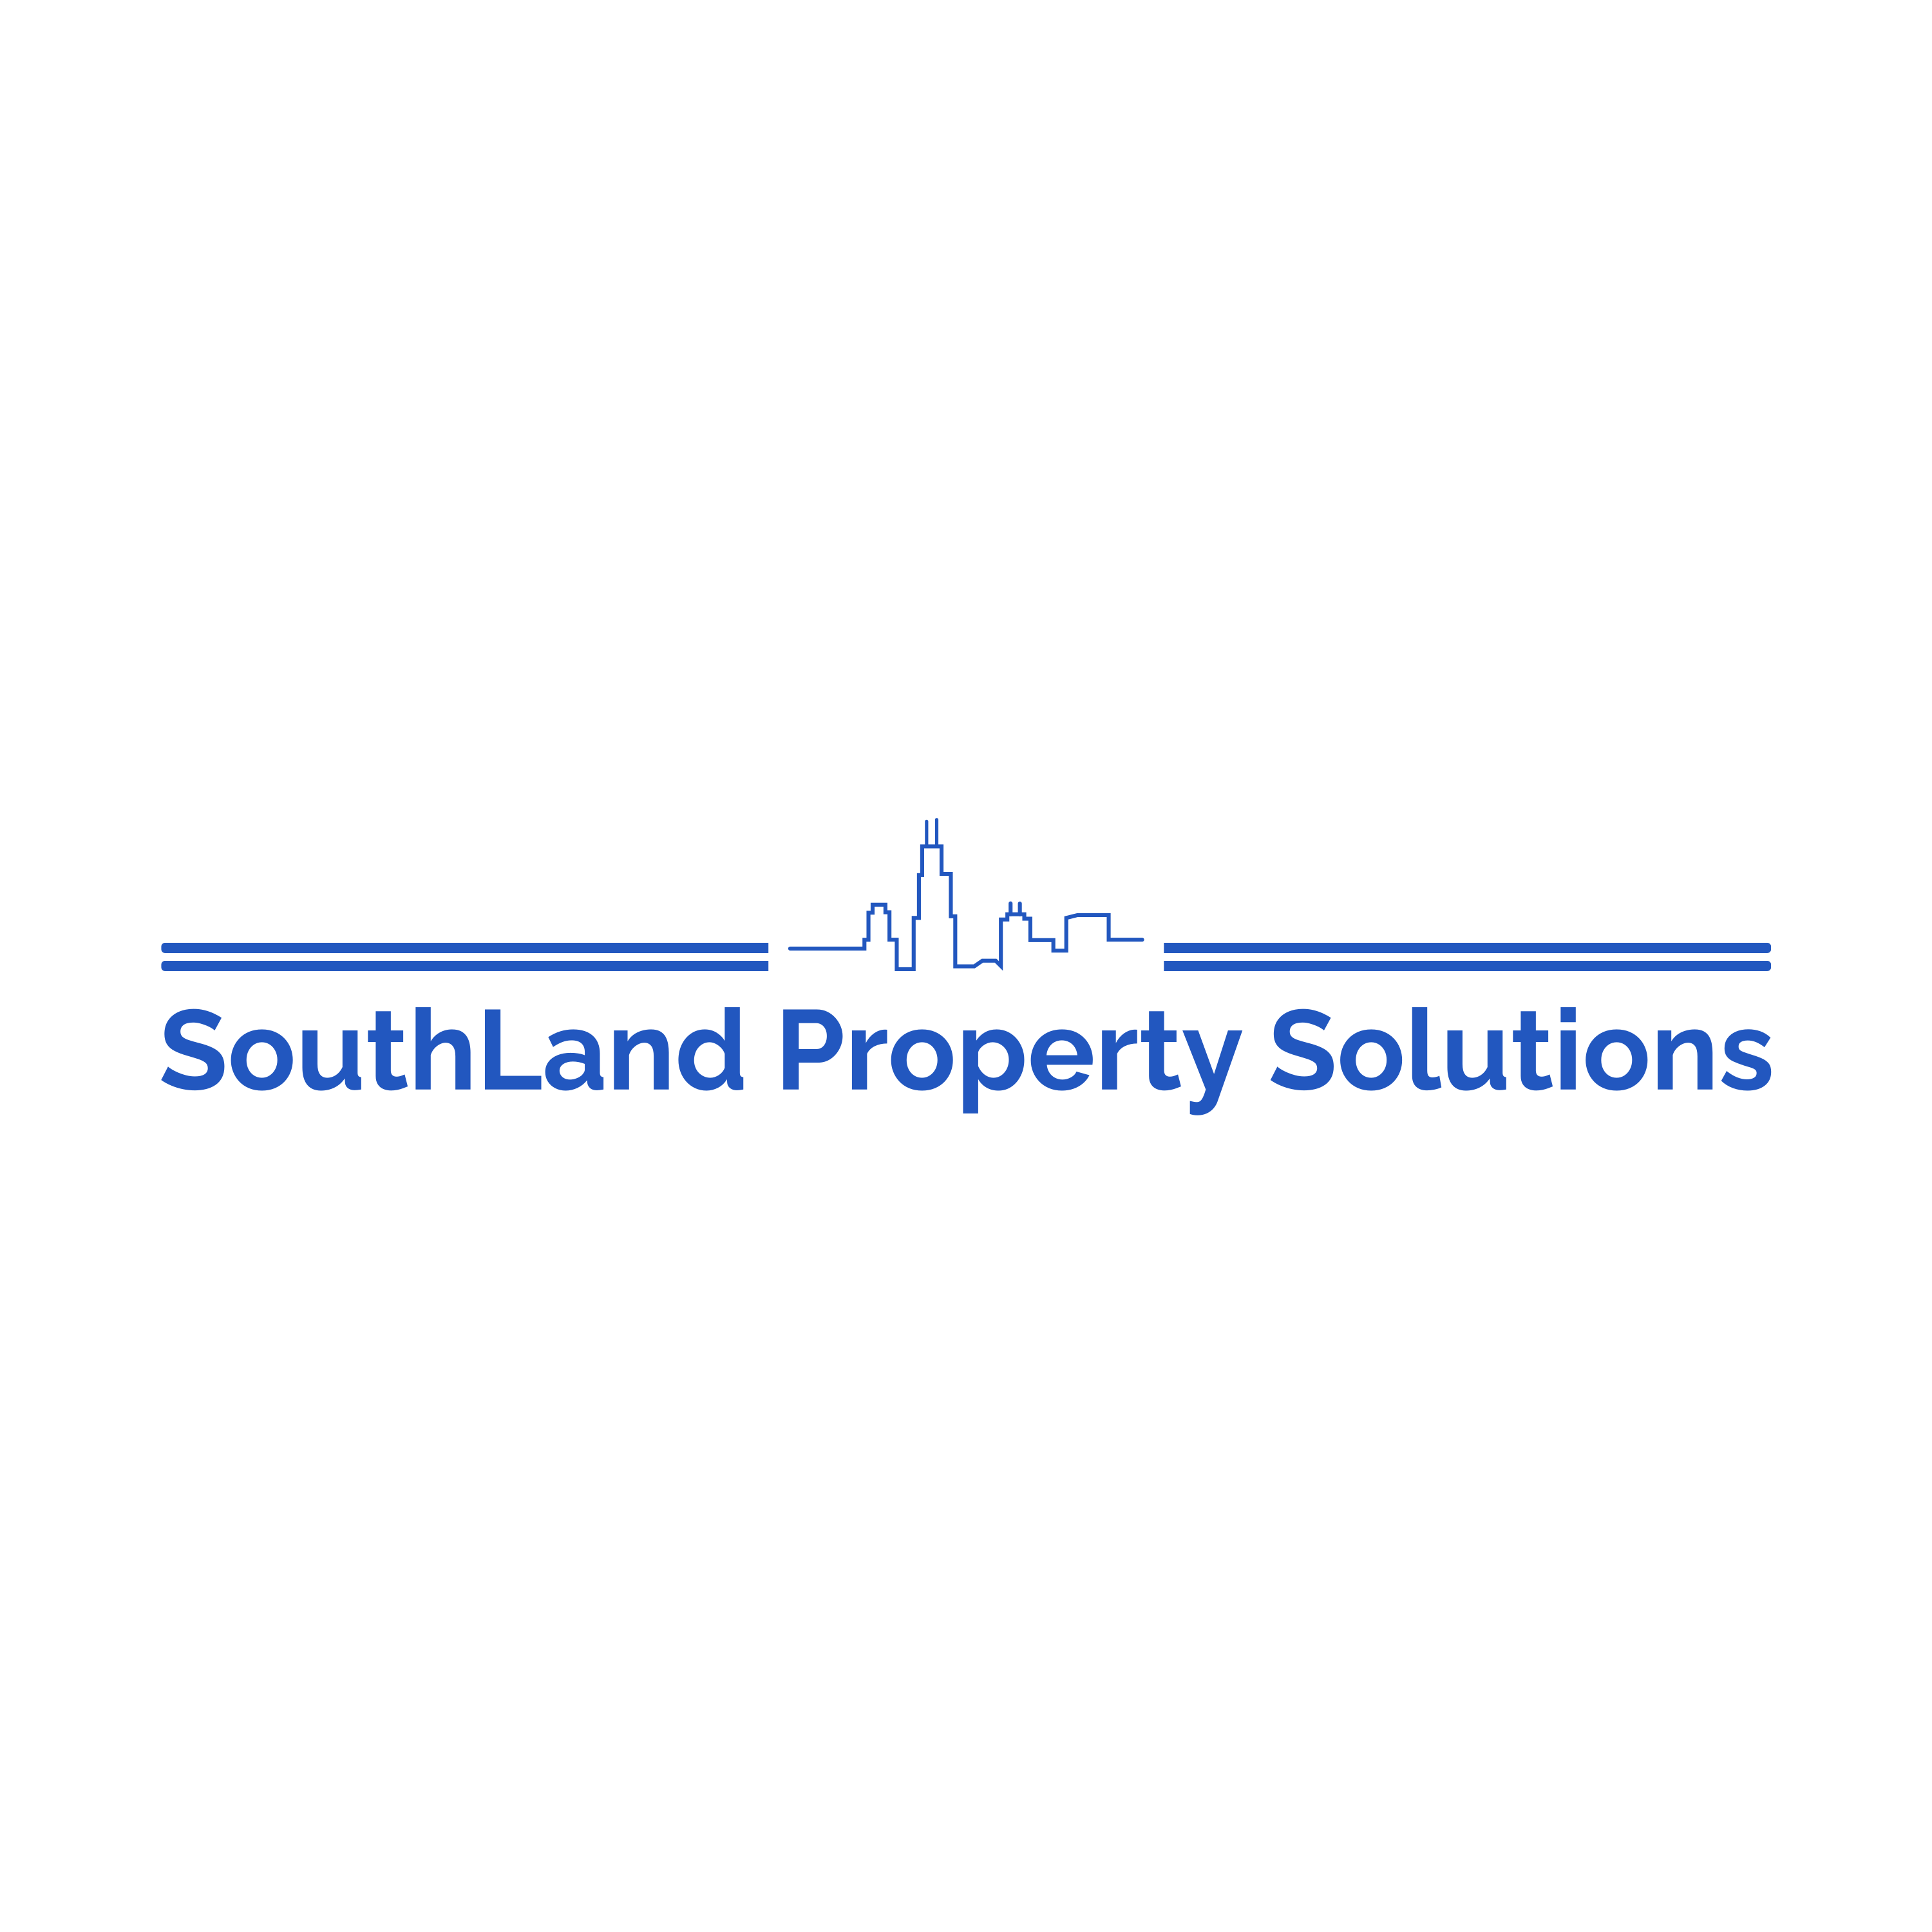 SouthLand Property Solutions